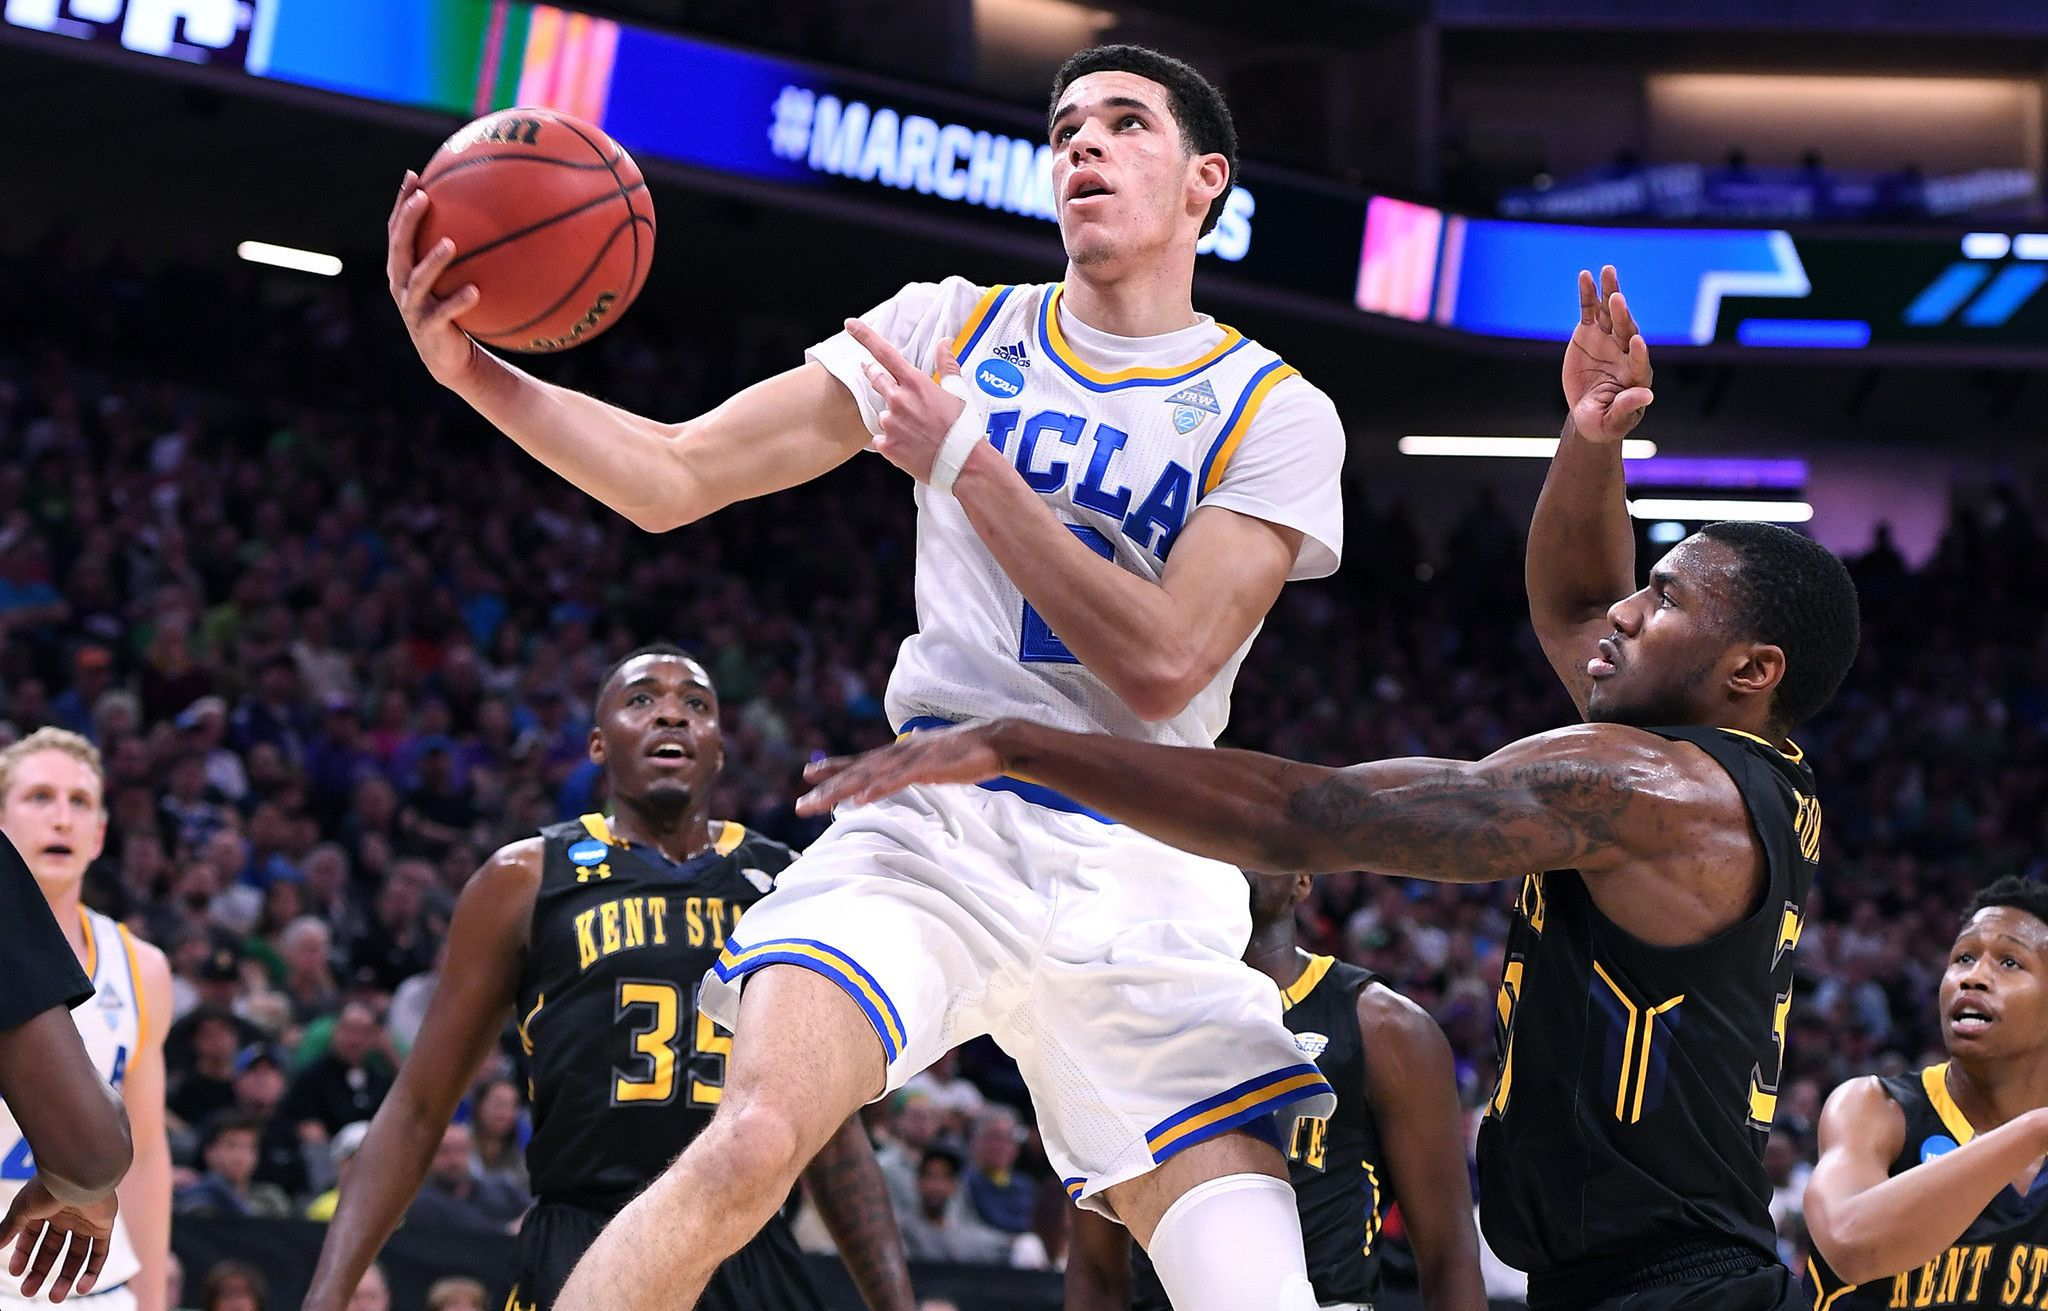 Dynamic freshman duo again carry the Bruins to victory